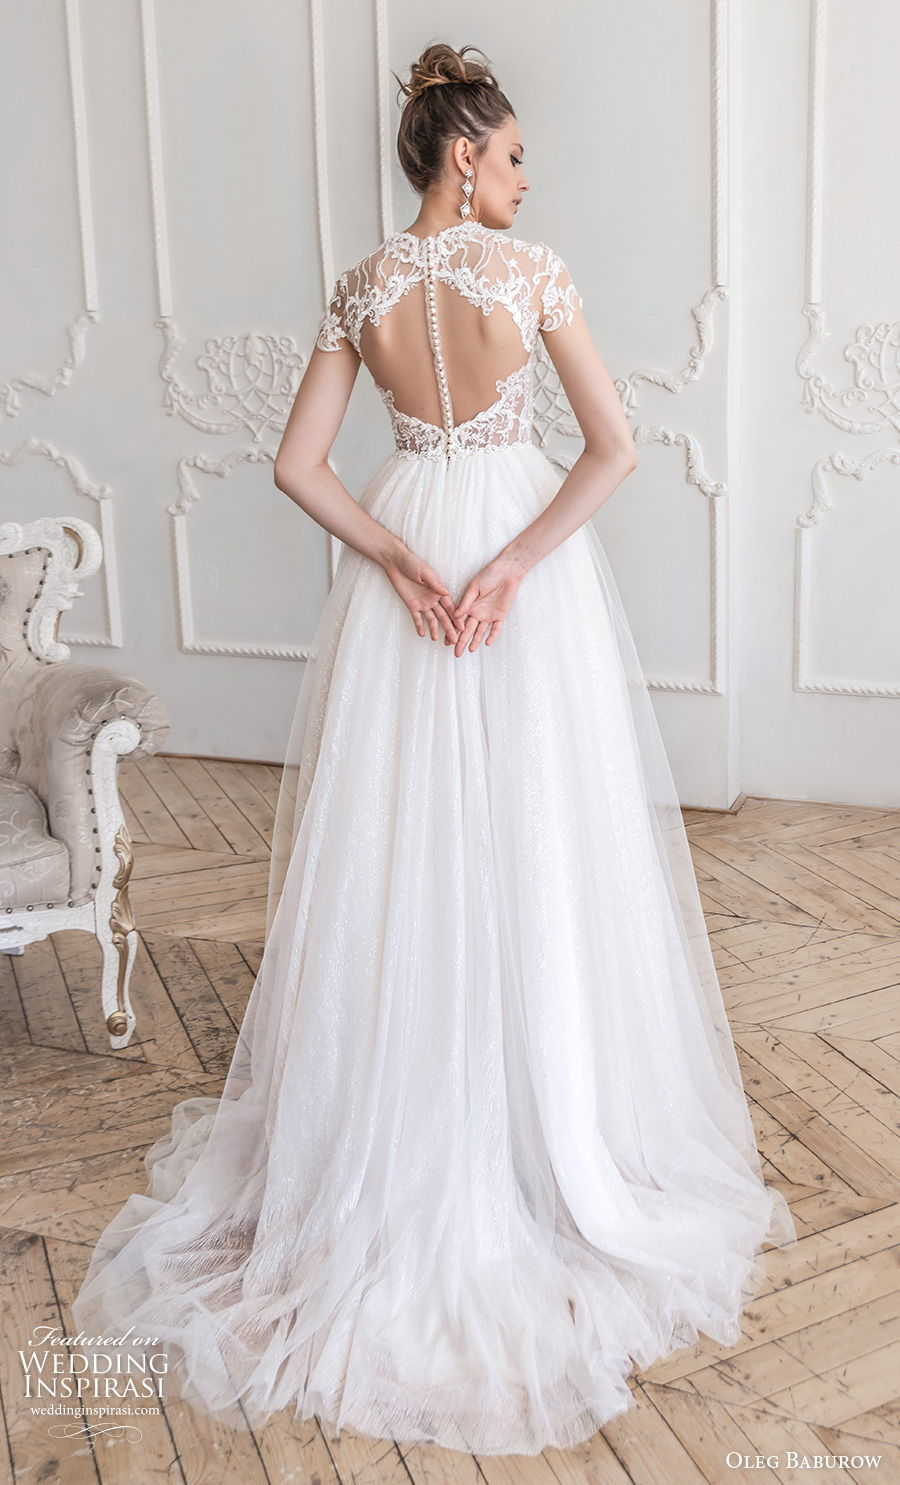 oleg baburow 2021 bridal cap sleeves illusion high neck sweetheart neckline heavily embellished bodice romantic soft a  line wedding dress keyhole sheer button back sweep train (13) bv